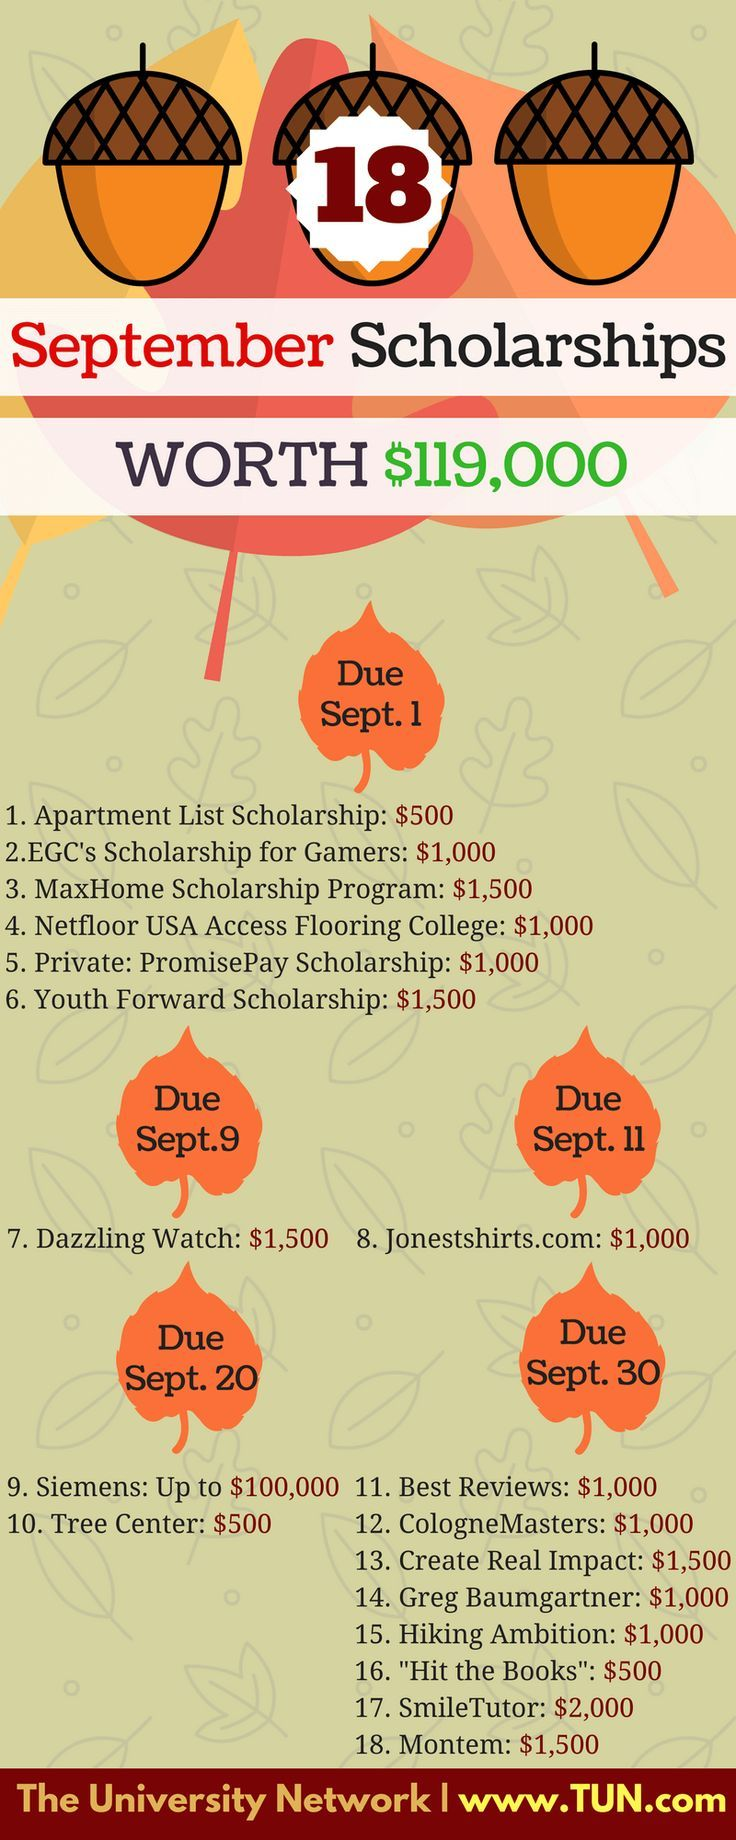 Make sure you're set for the upcoming semester by applying to these scholarships. #9 could really help a STEM student!